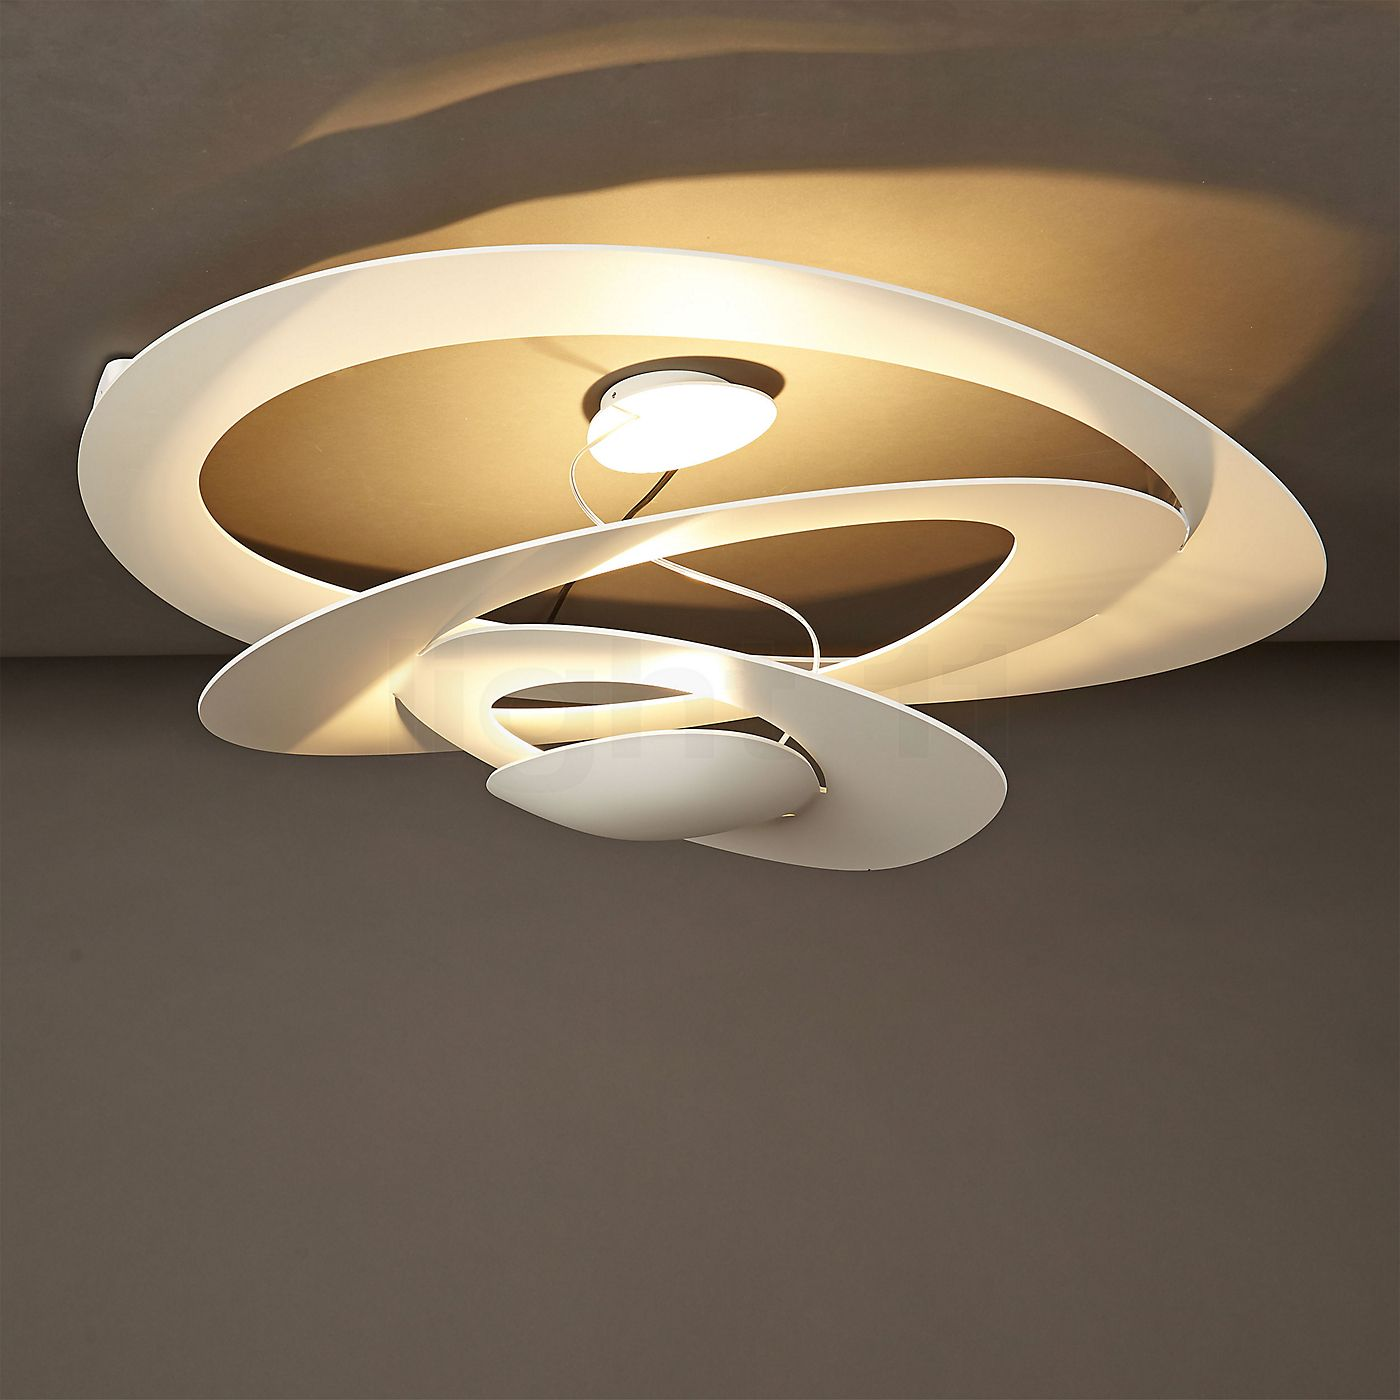 Soffitto A Led.Artemide Pirce Soffitto Led Ceiling Lights Lighting Ceiling